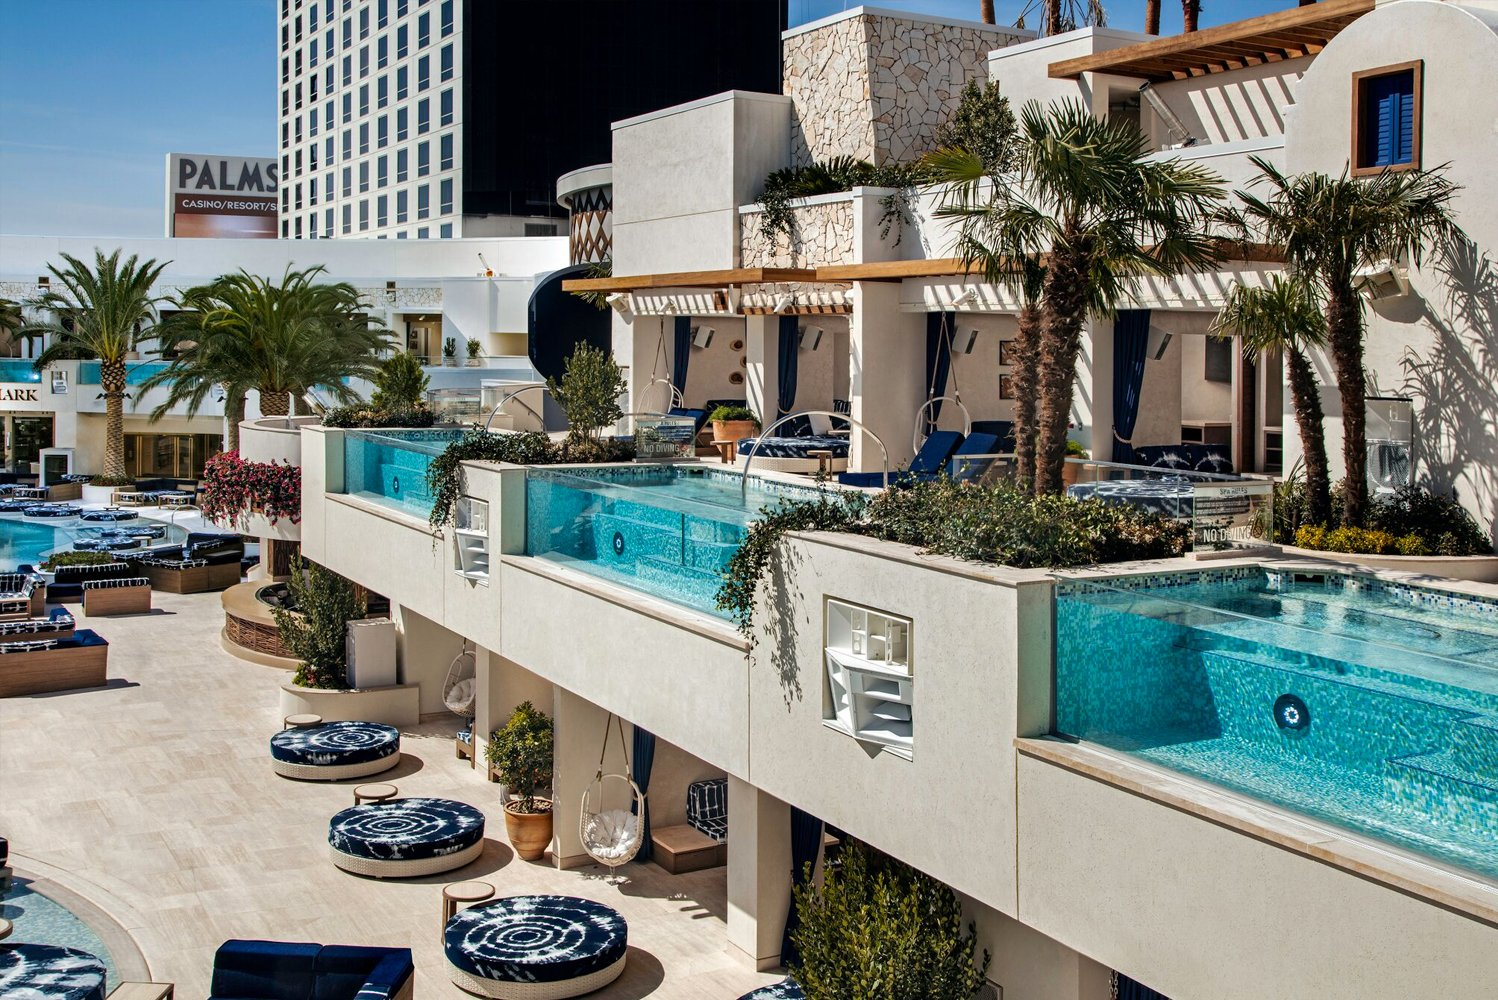 Lifescapes International completed its landscape design around the newly reimagined Palms Casino Resort in Las Vegas – a $690 million redevelopment.